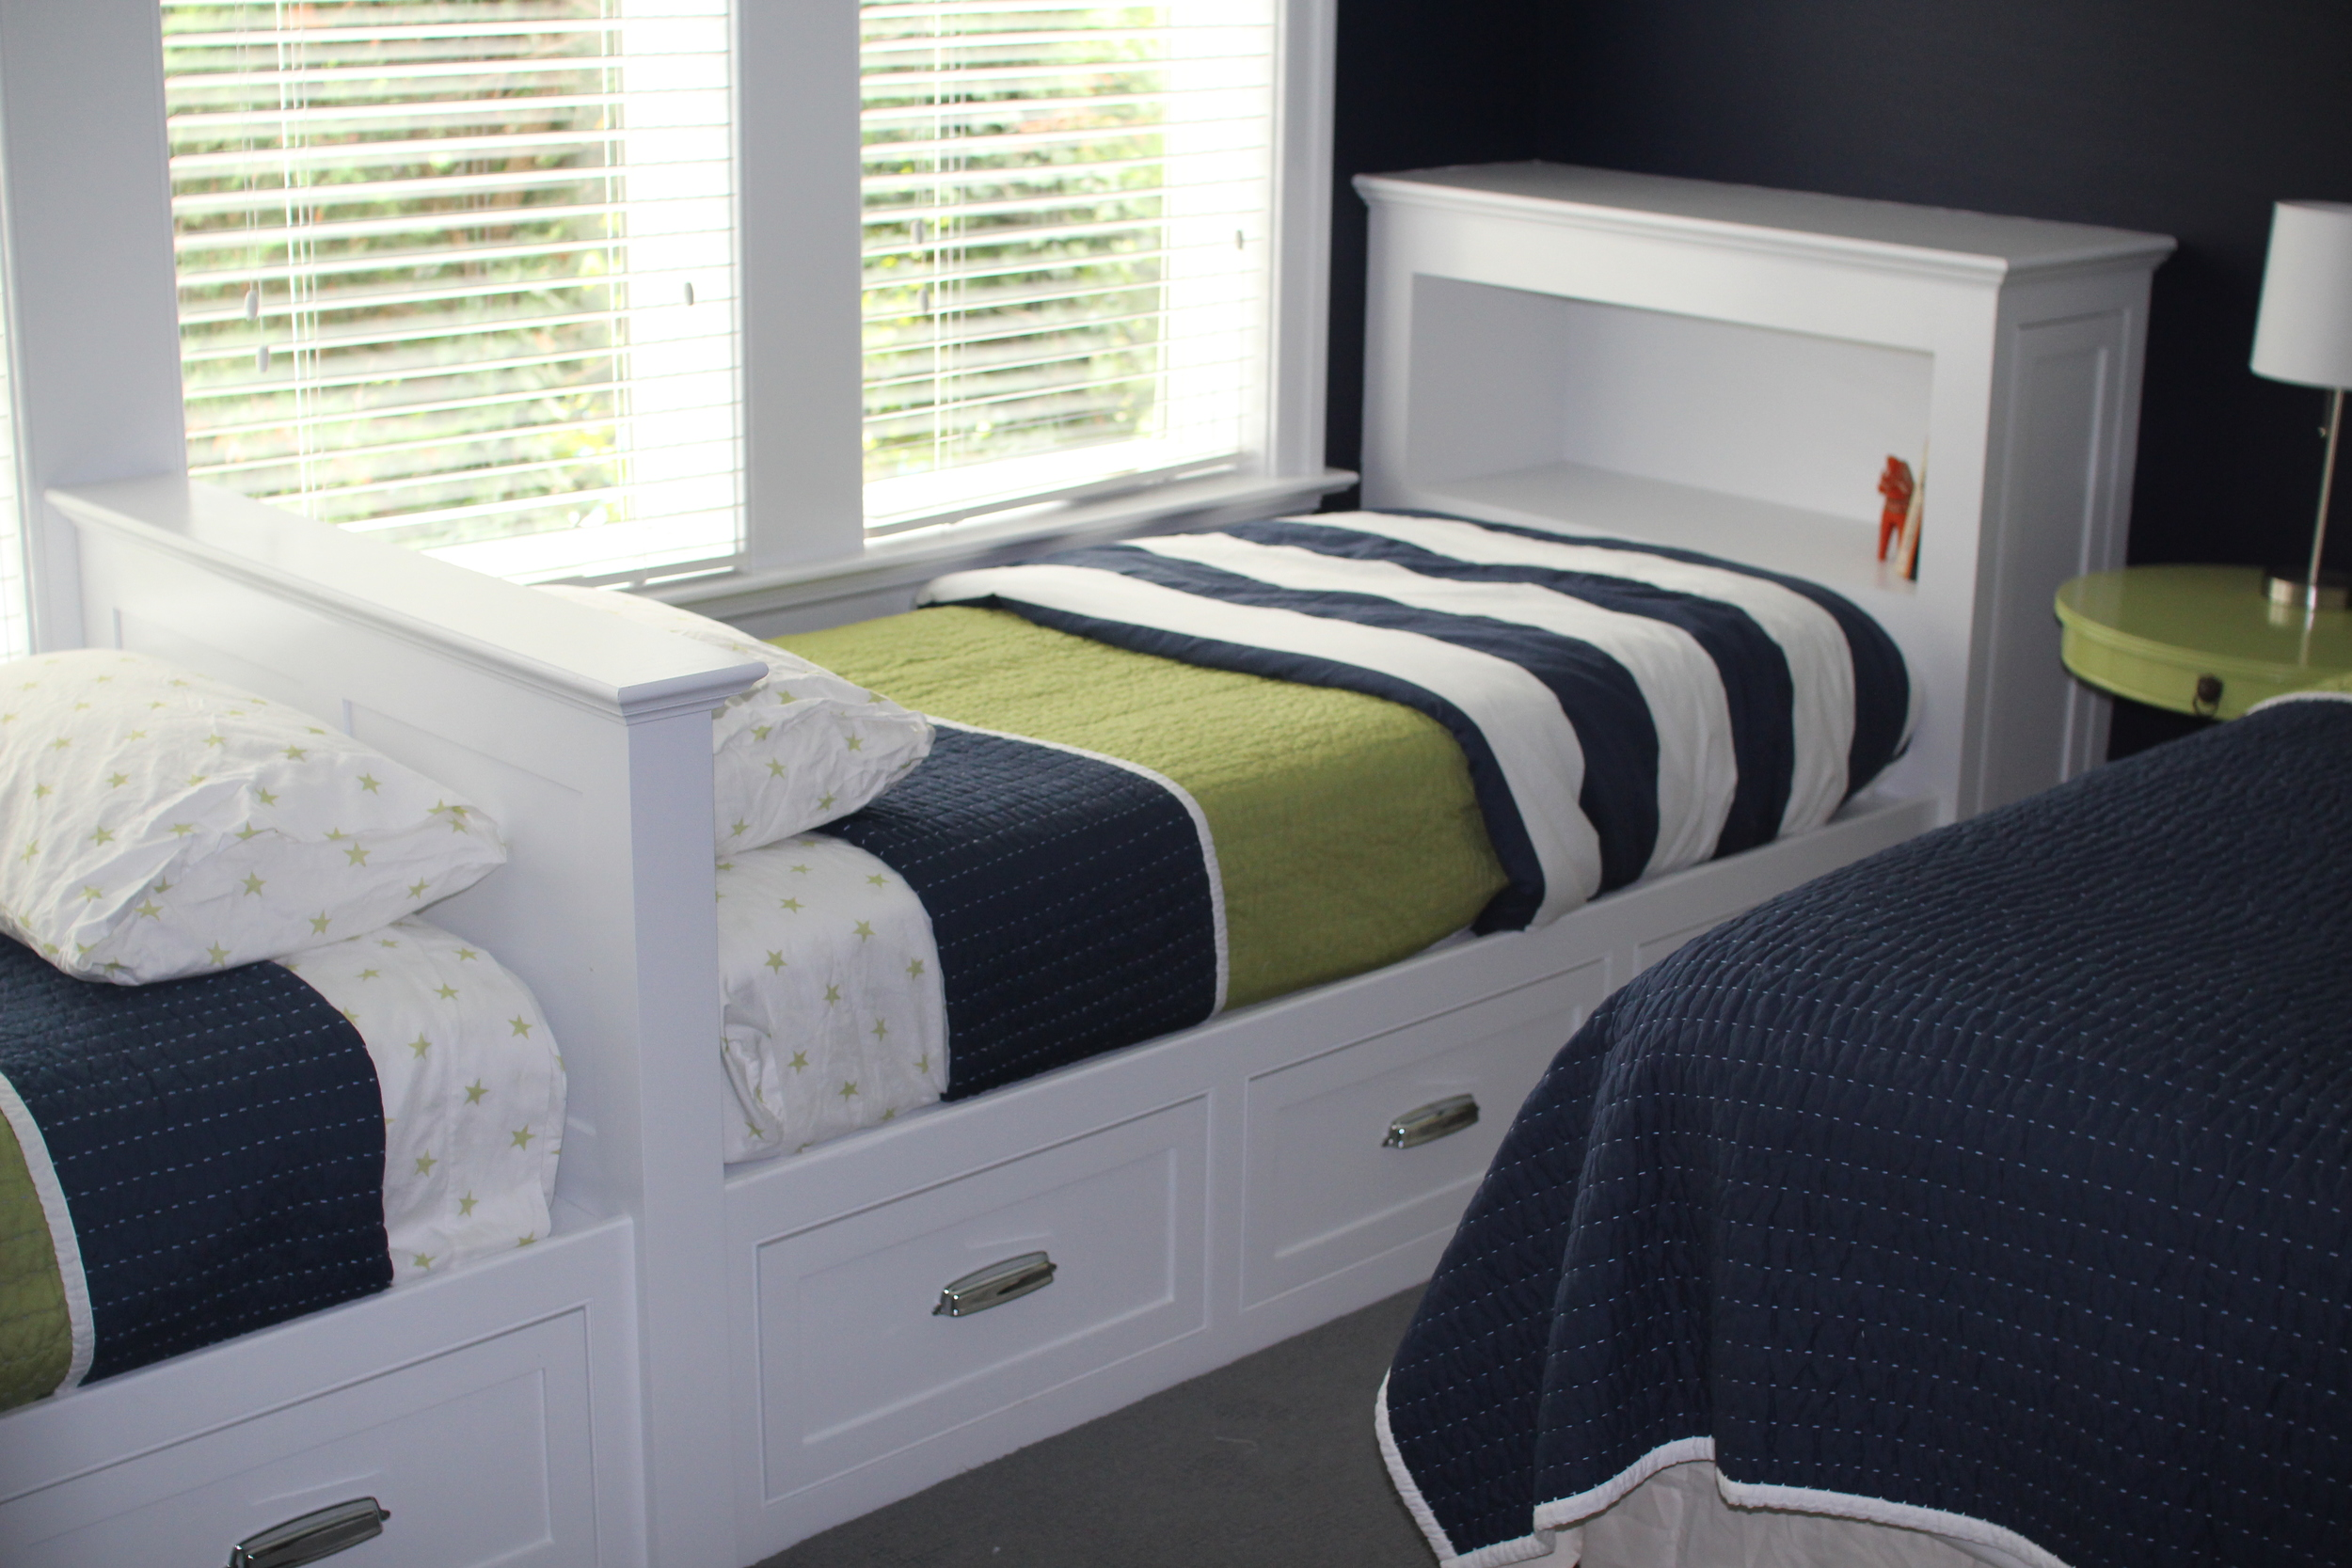 Bedroom Built in